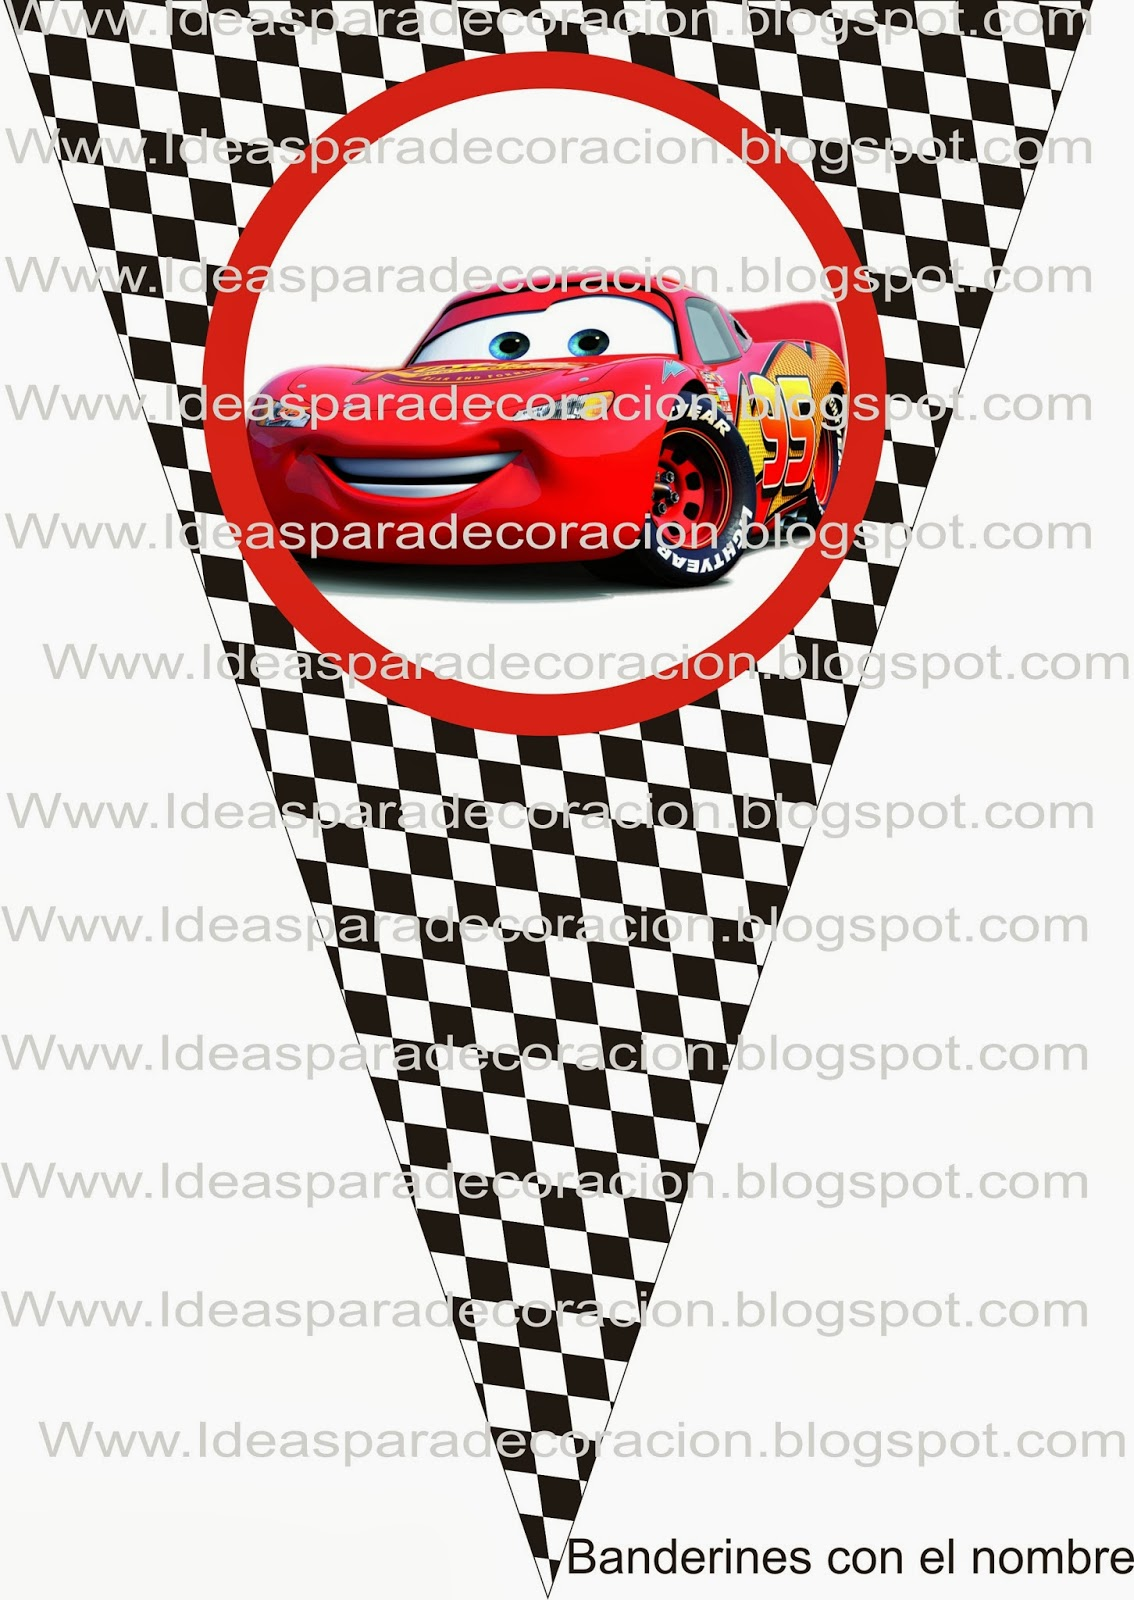 Ideas para la decoraci n de fiestas infantiles kit cars - Decoracion de cars para fiestas infantiles ...